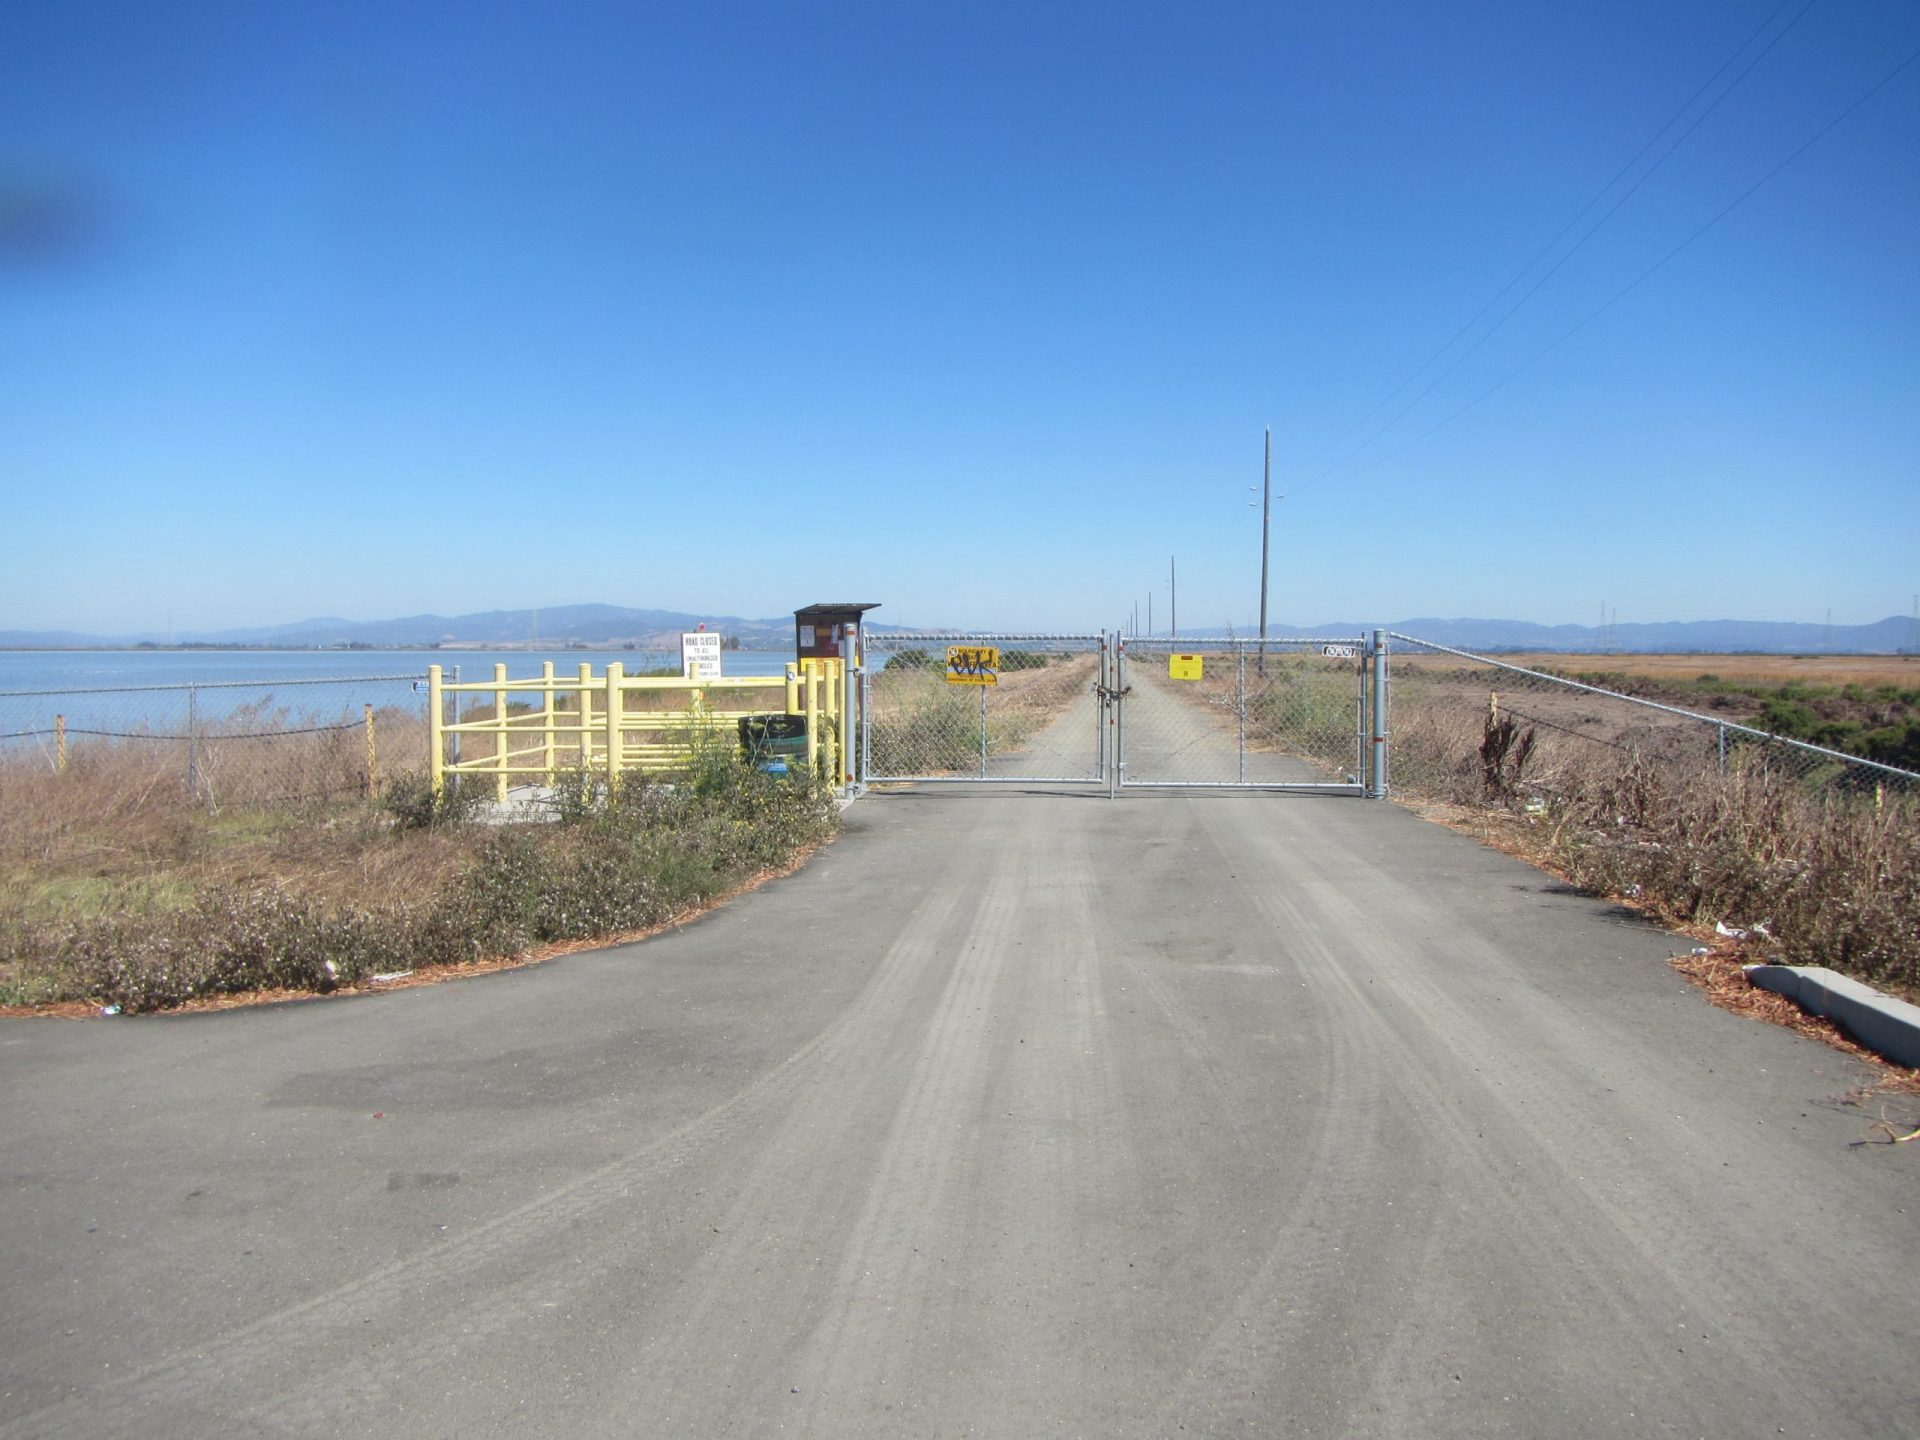 gravel road and locked chainlink fence